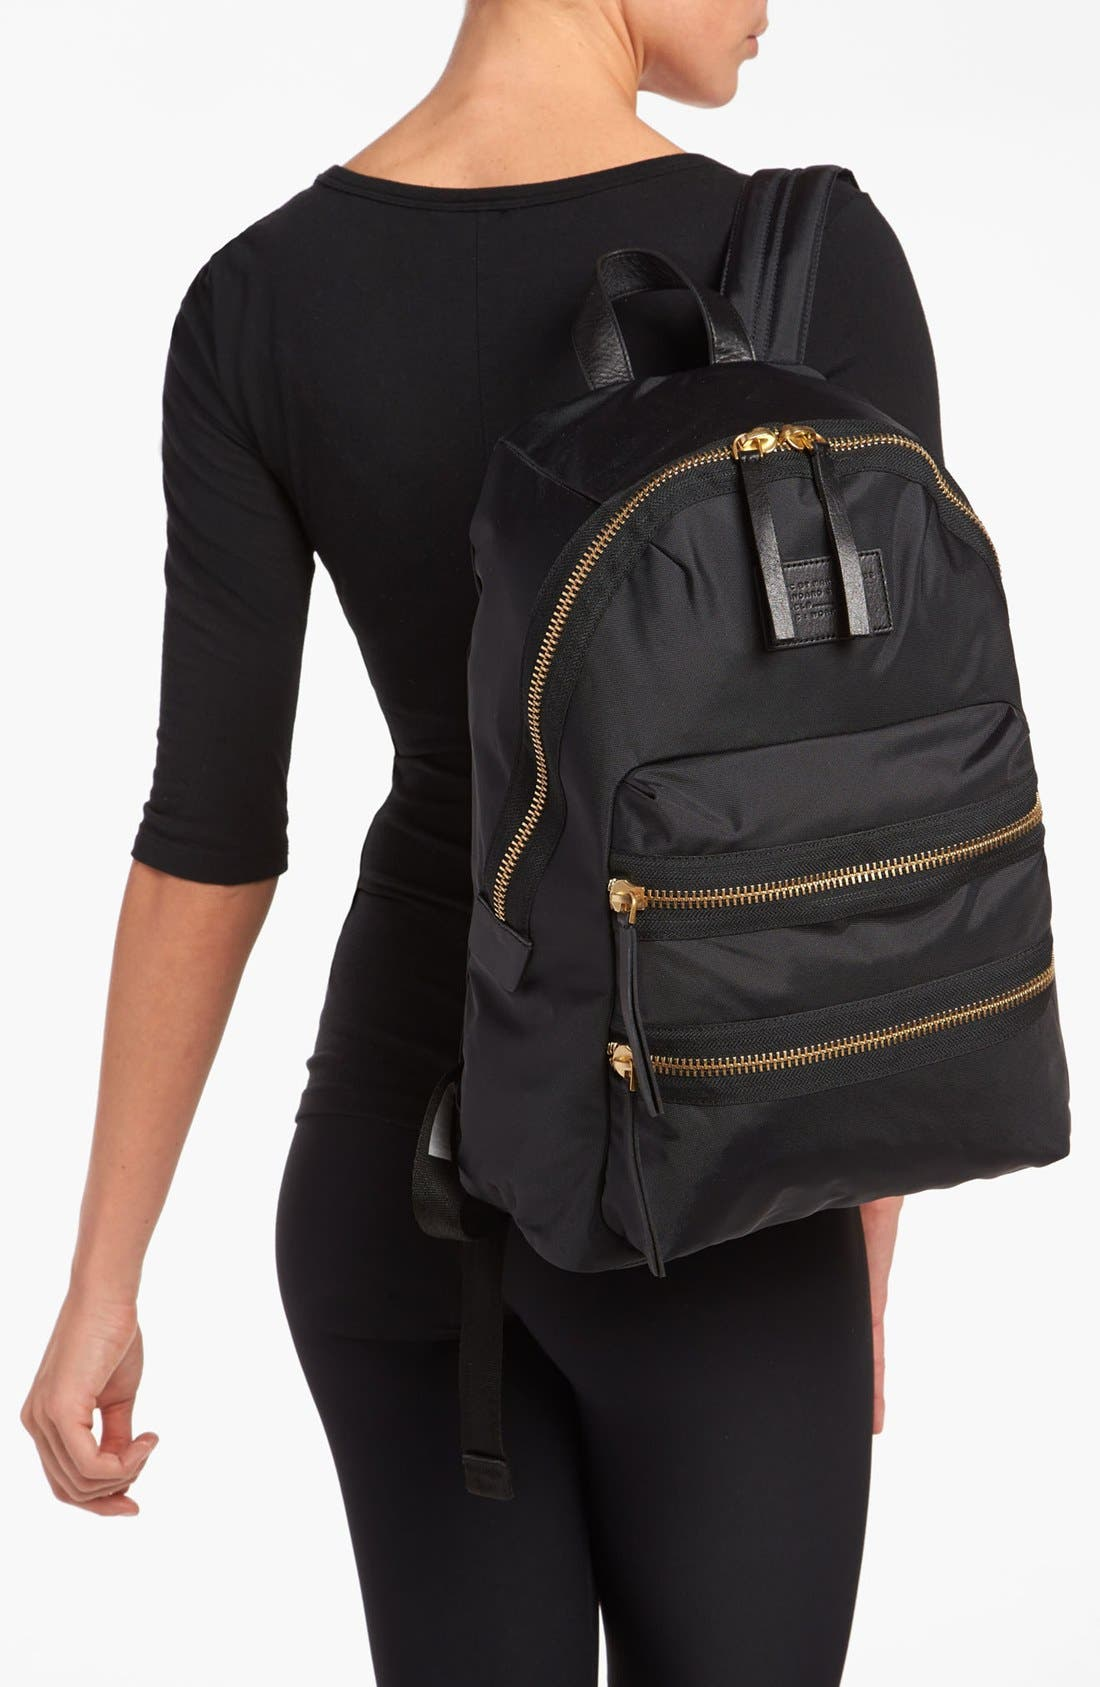 MARC BY MARC JACOBS 'Domo Arigato Packrat' Backpack,                             Alternate thumbnail 6, color,                             001